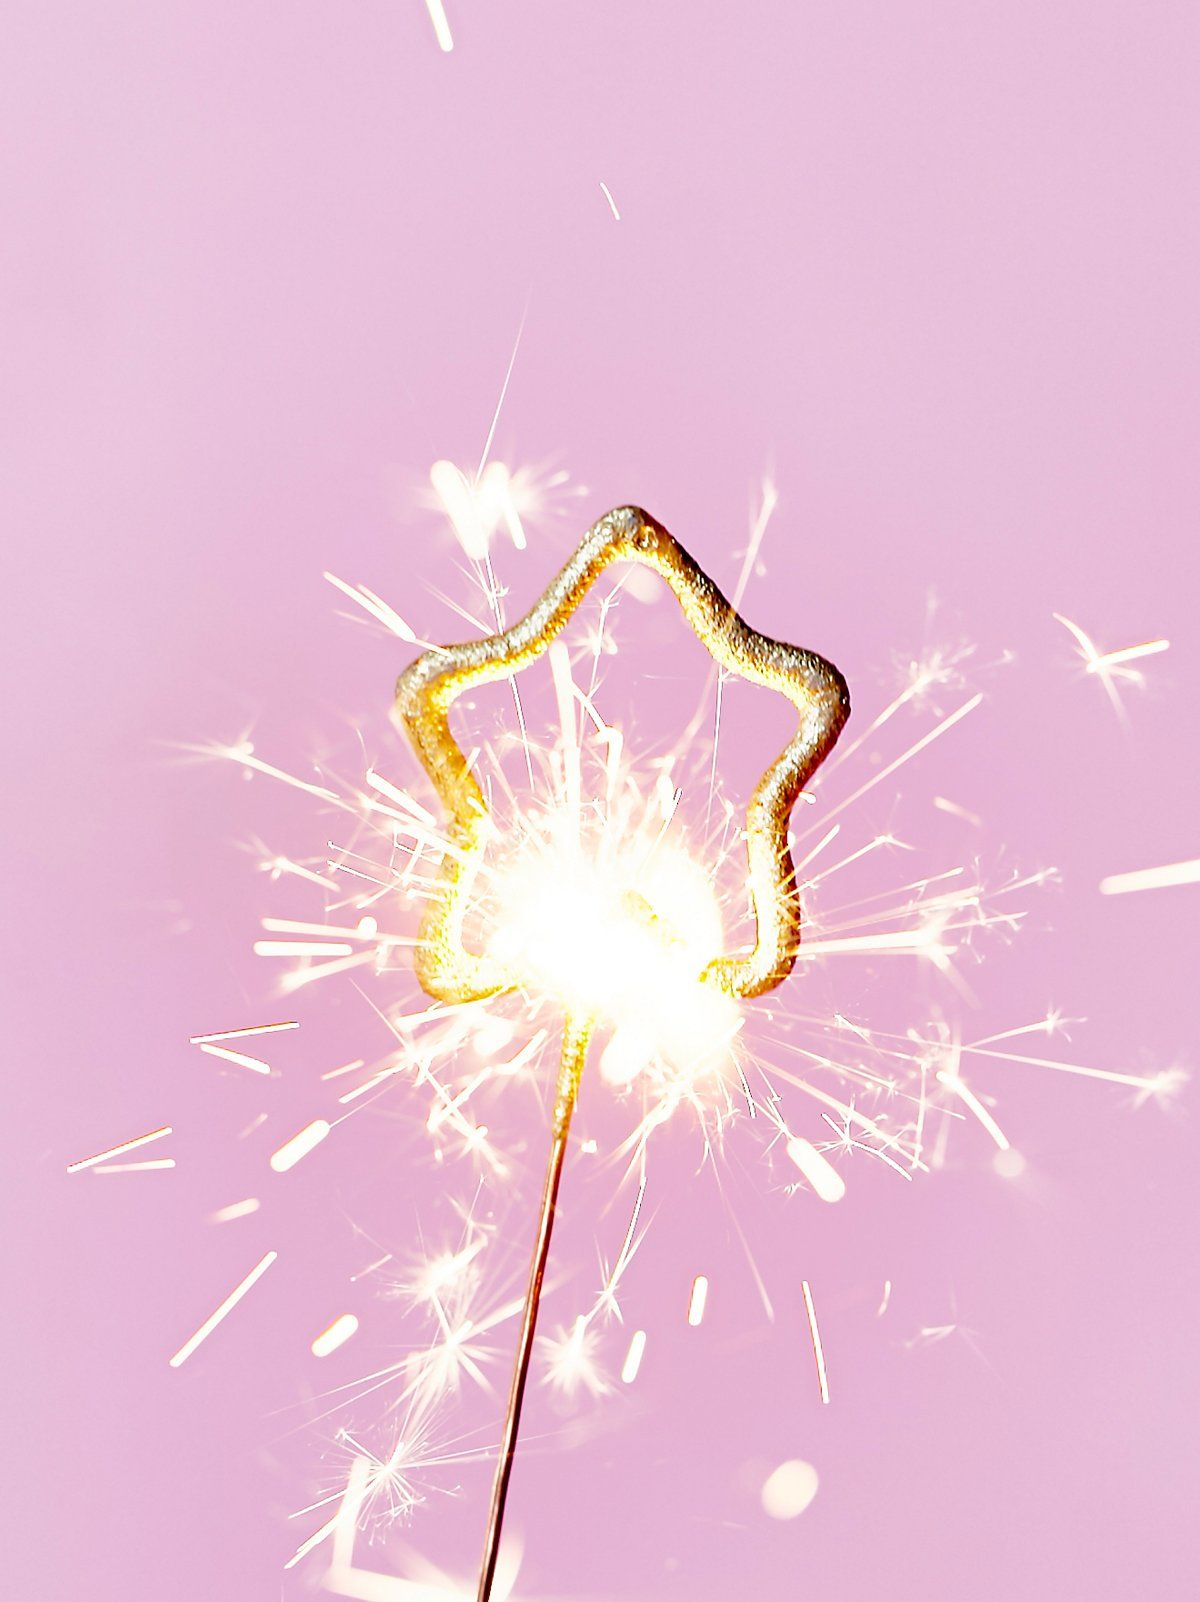 5 Pack FP Sparklers   Let sparks fly this holiday season with this ...